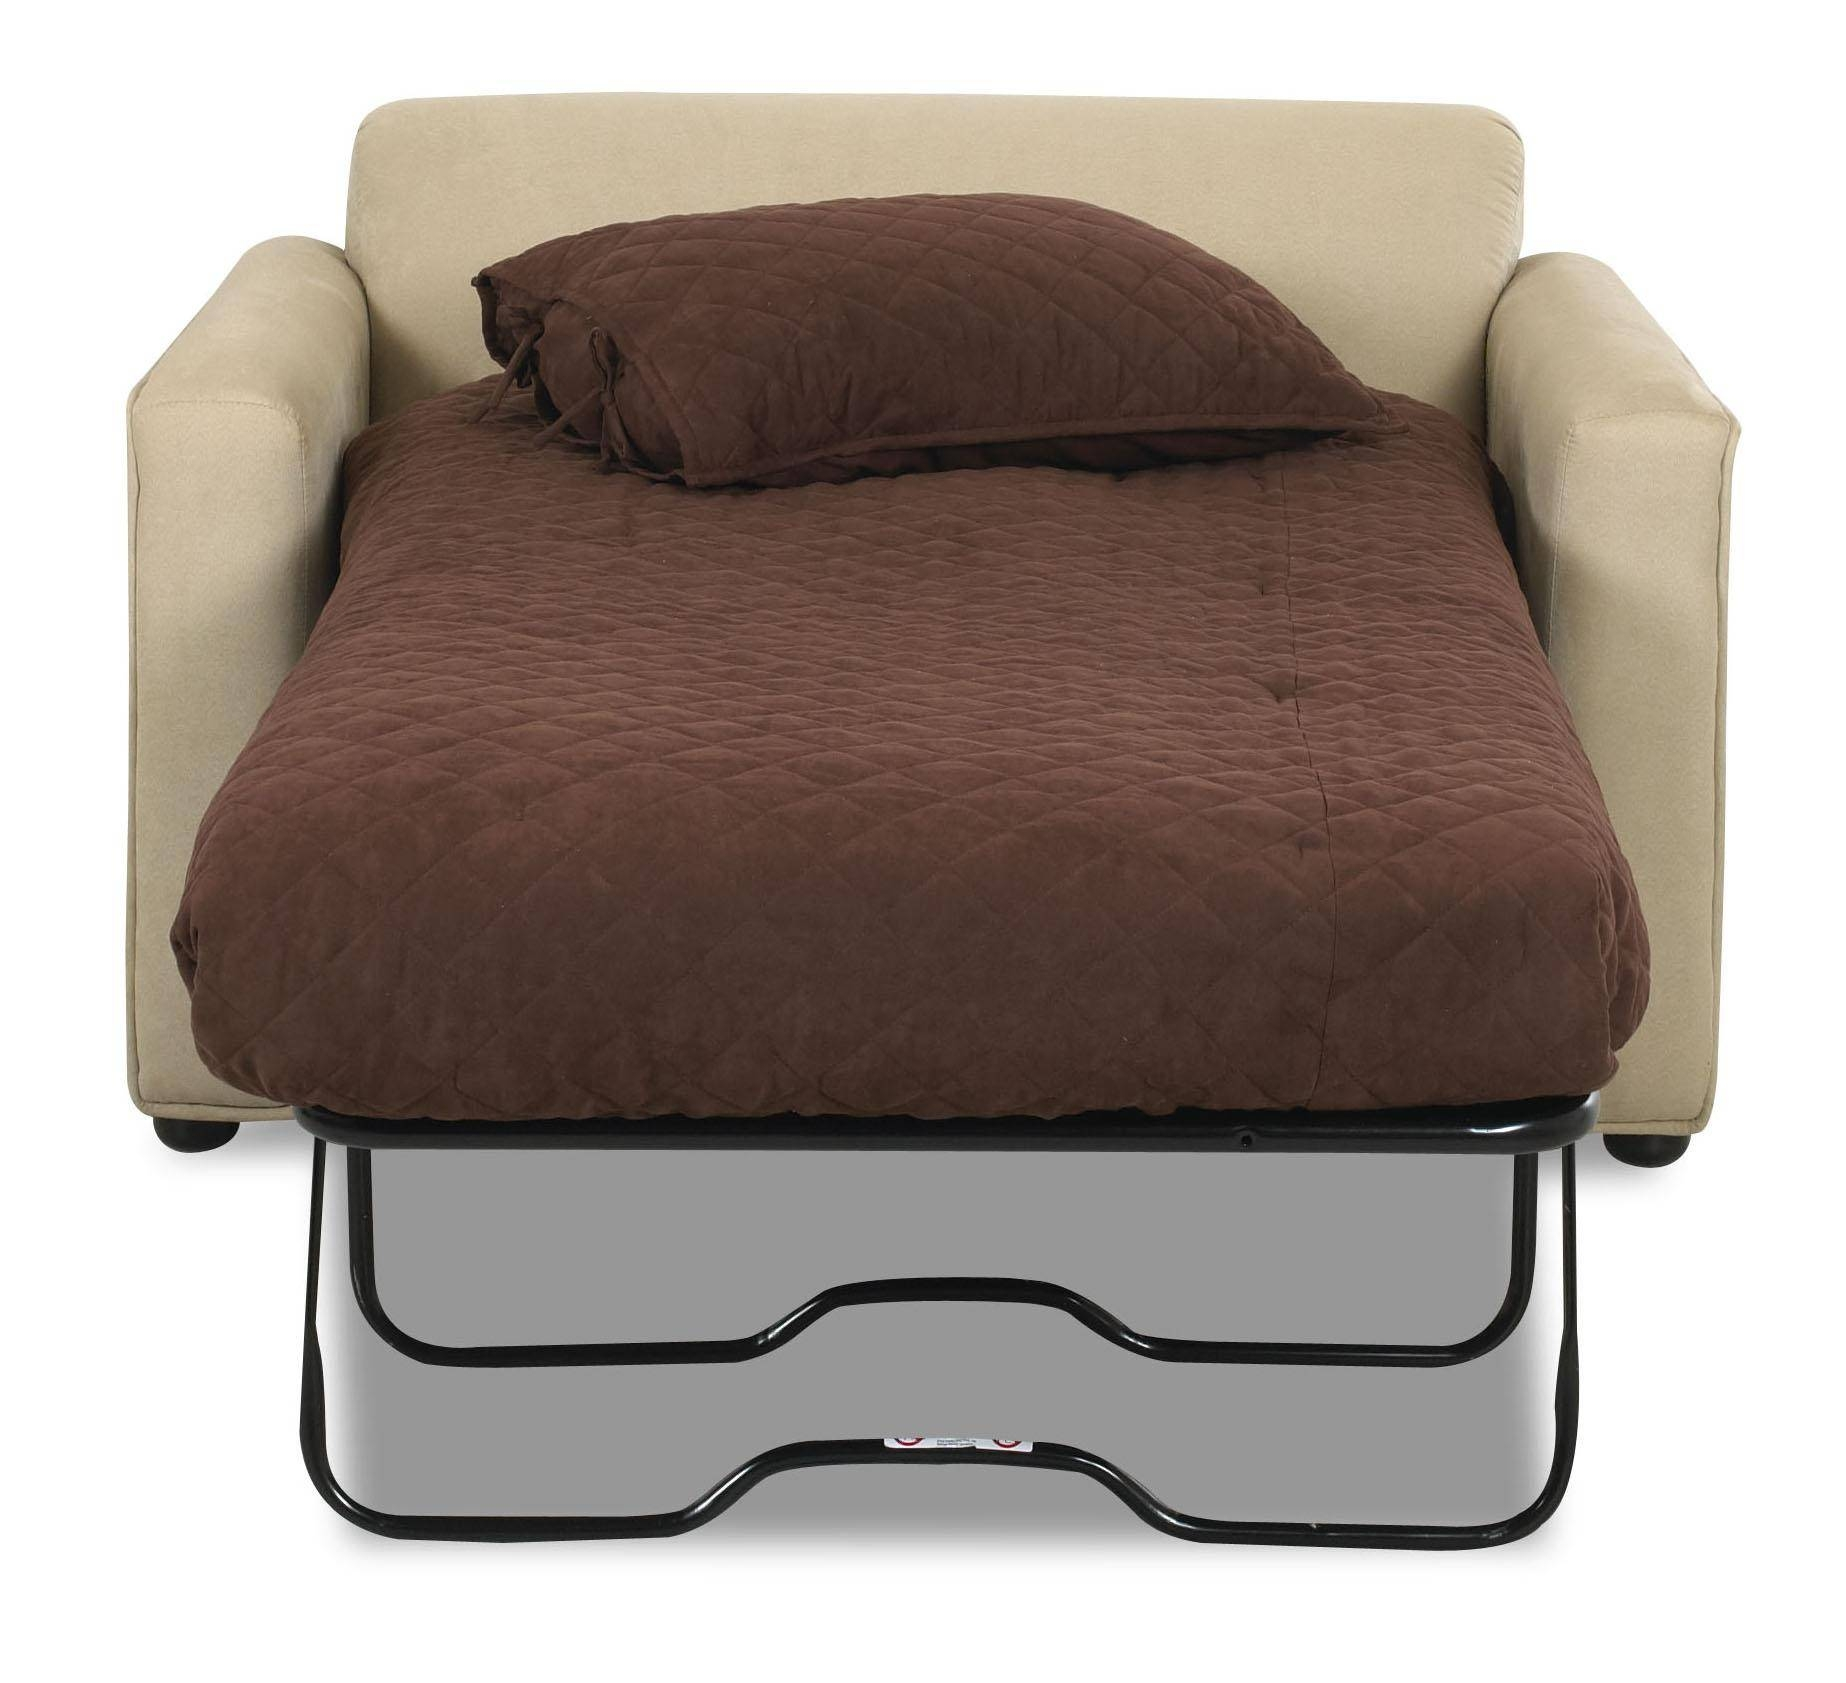 Furniture Home: Twin Sofa Sleeper Furniture Designs Inspirations intended for Full Size Sofa Sleepers (Image 6 of 30)